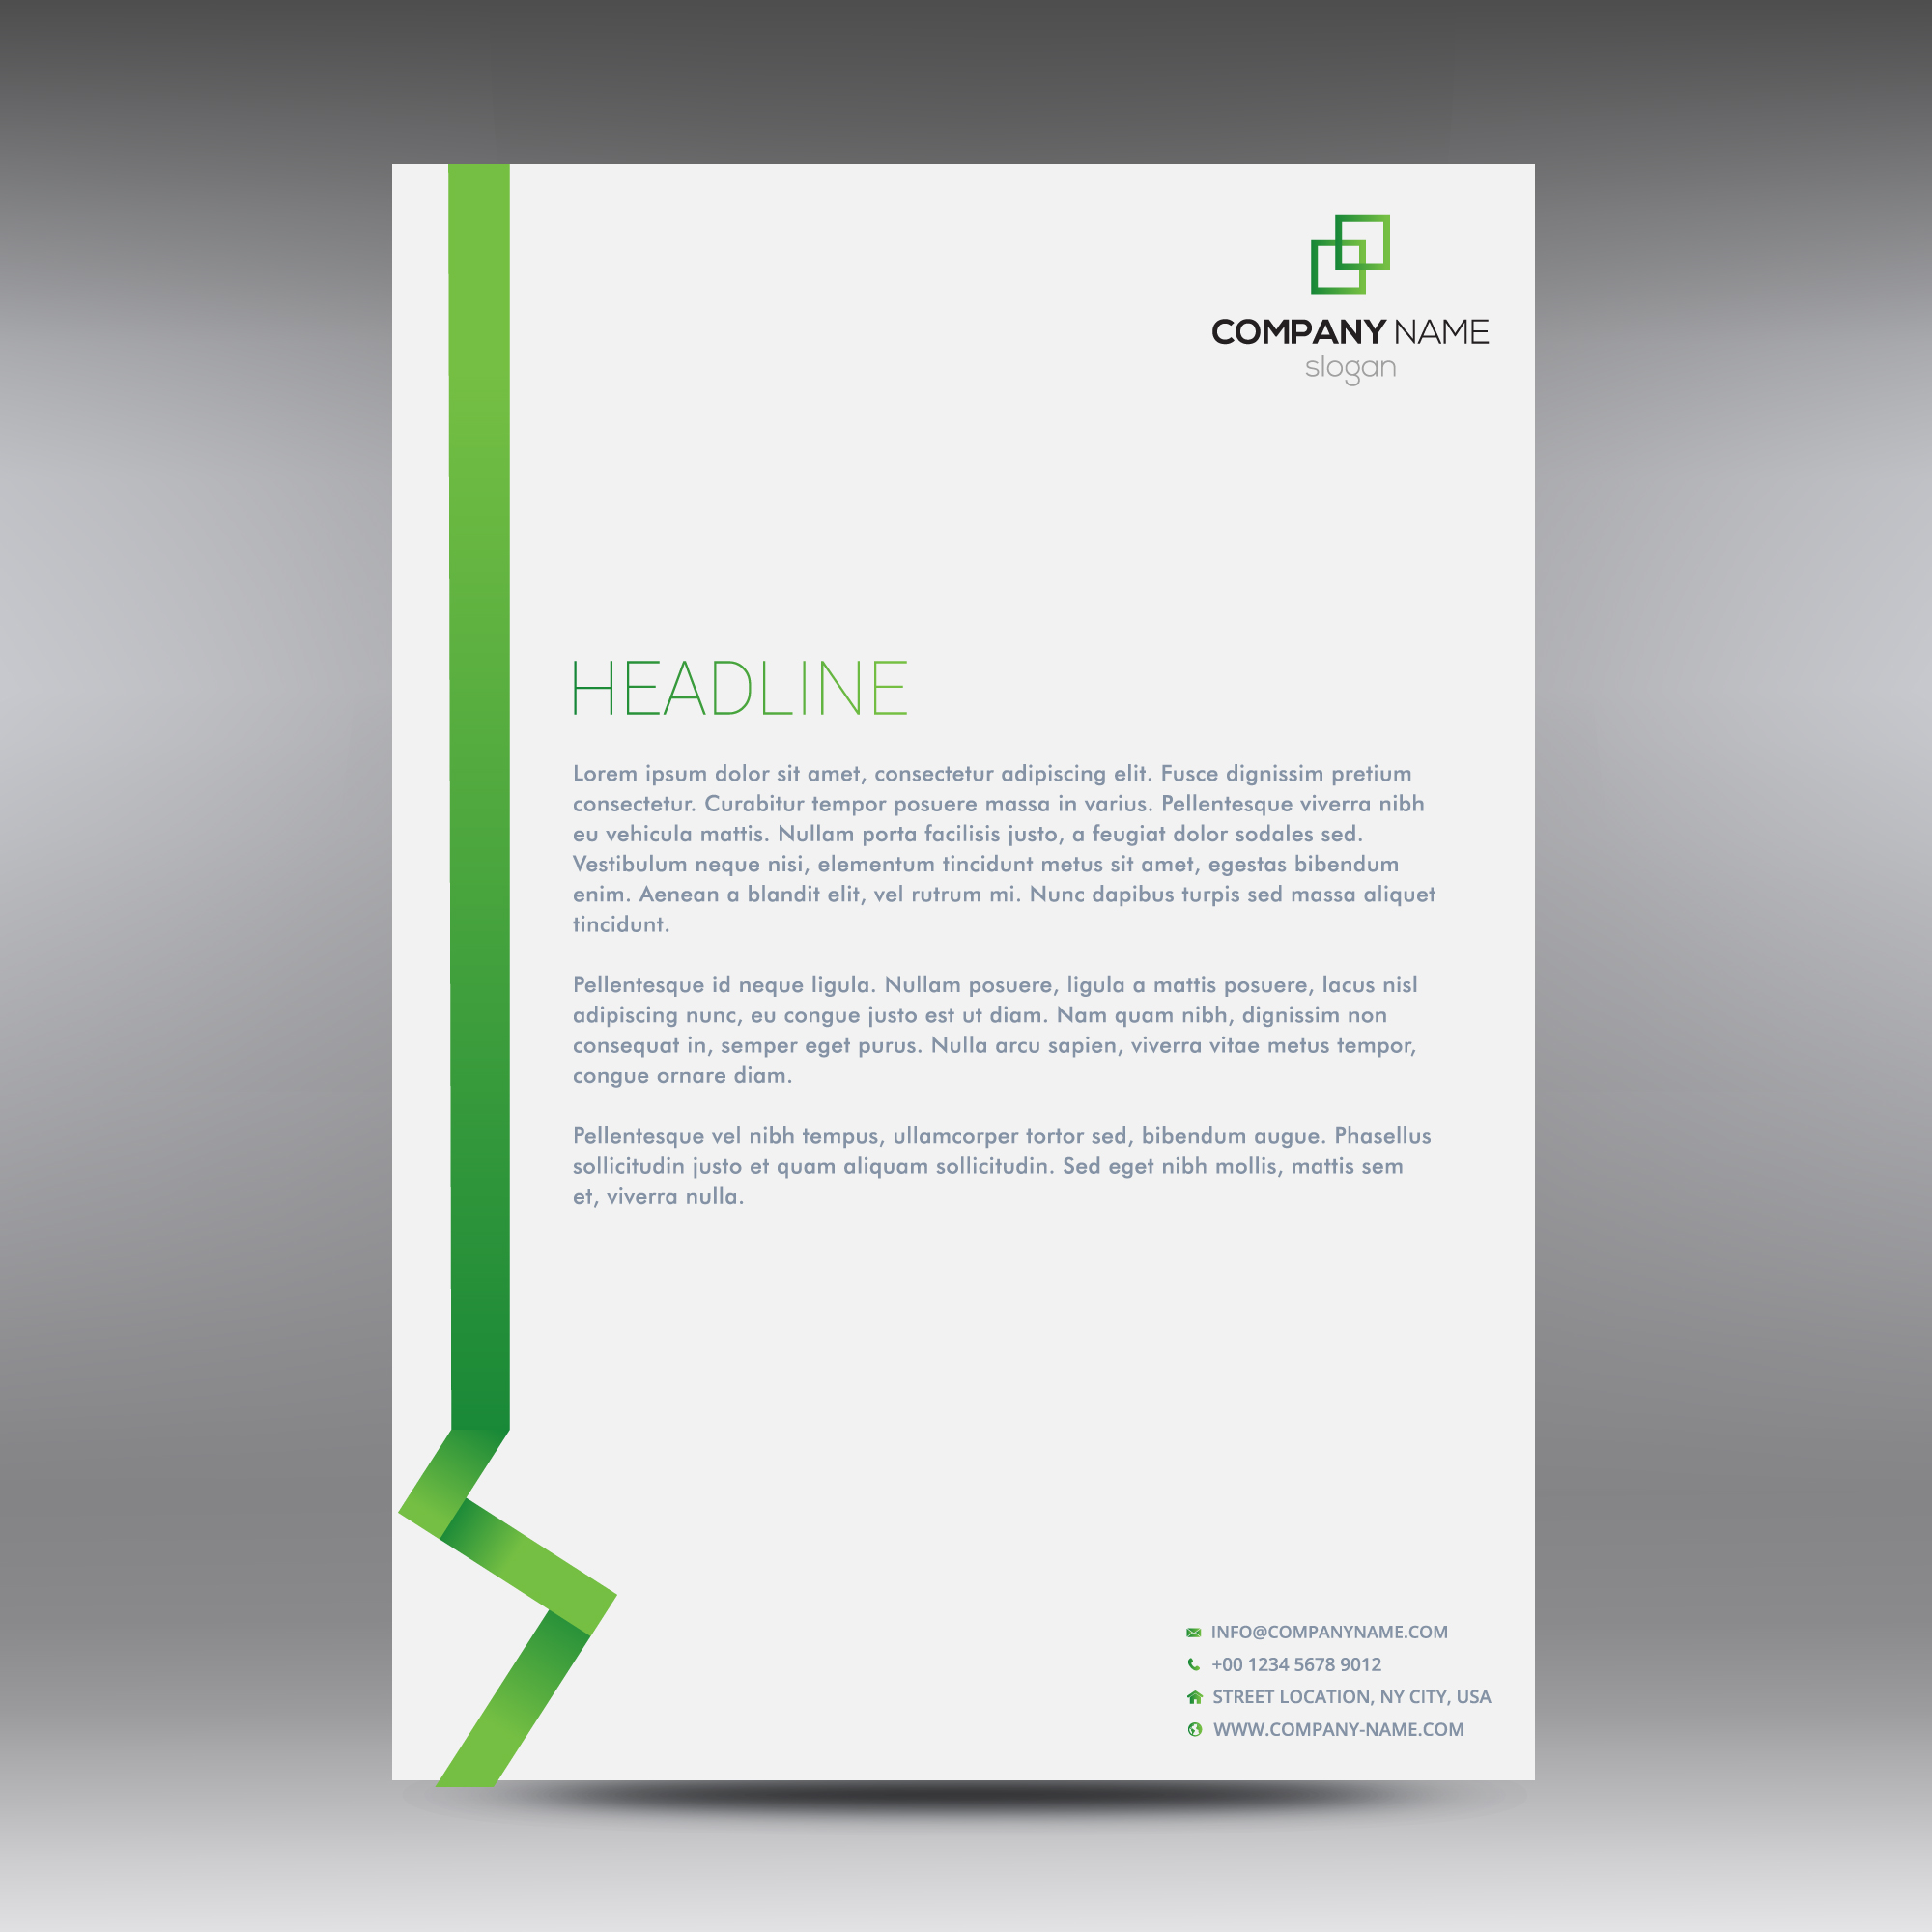 White and green business document